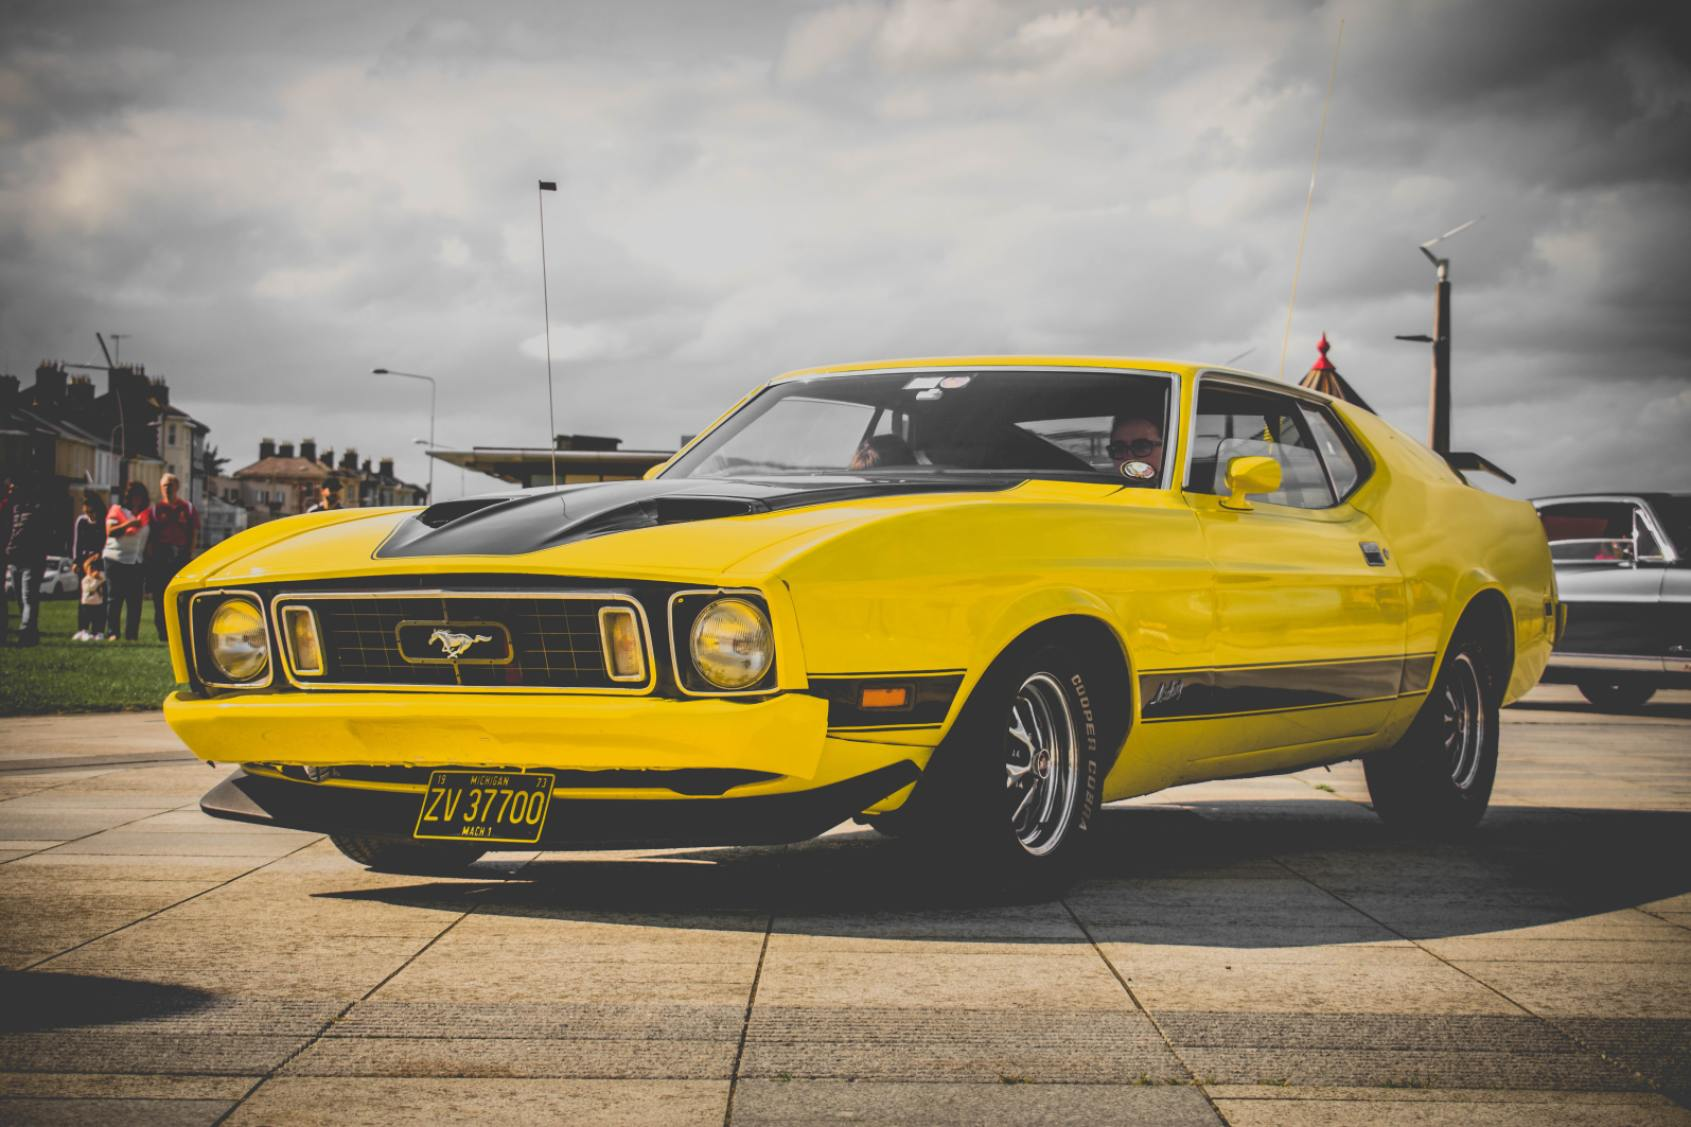 Yellow Ford Mustang - Original image